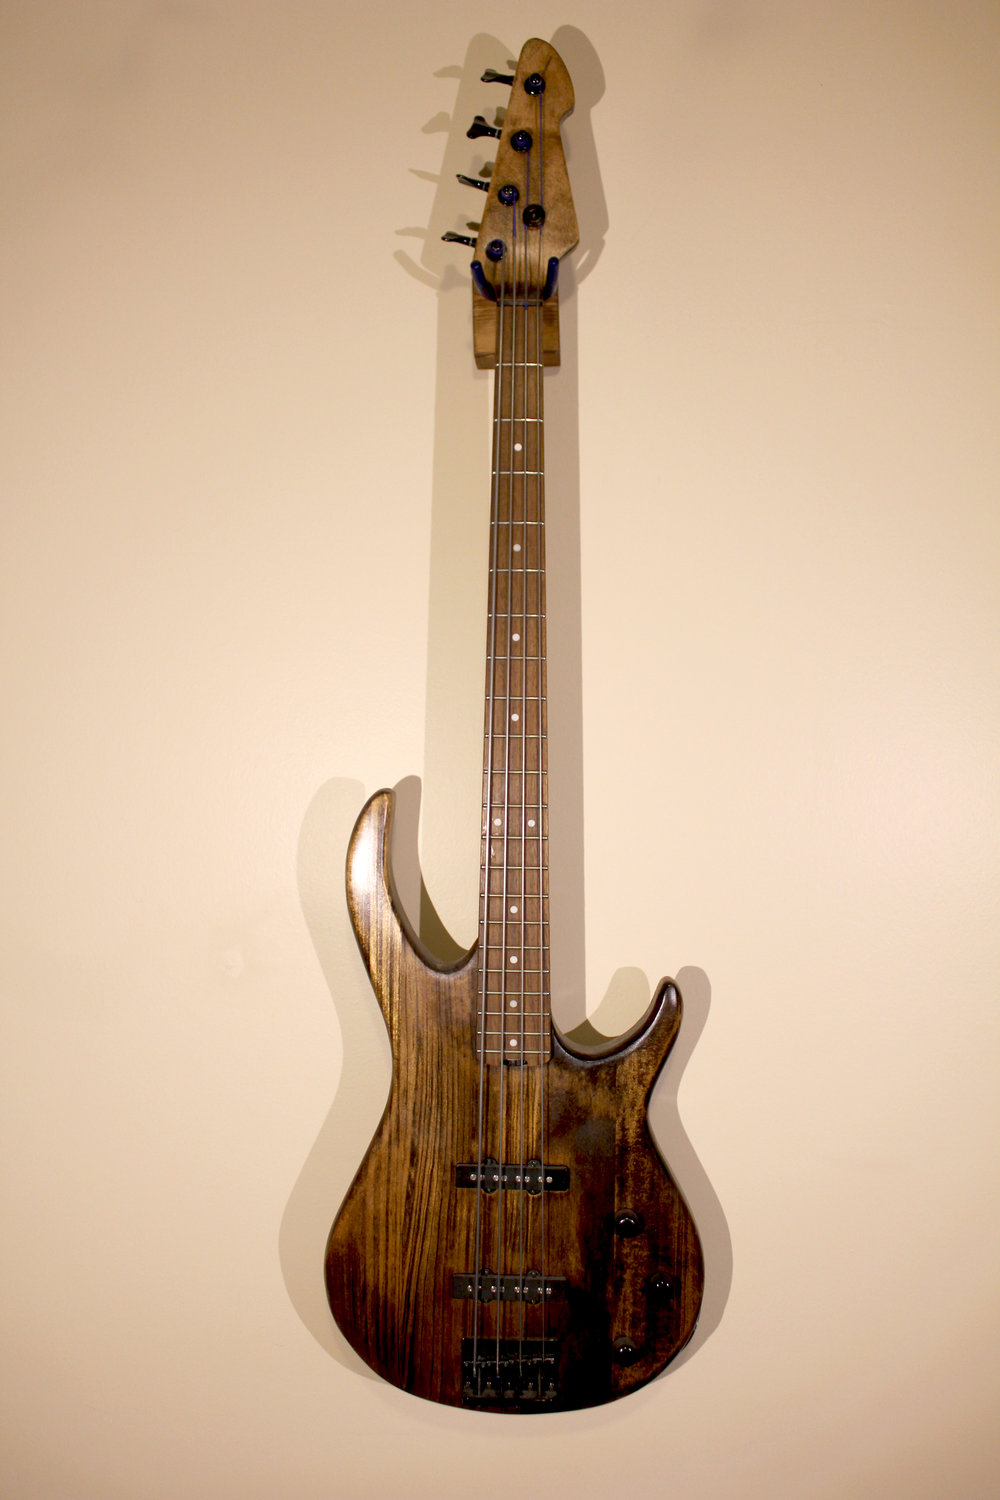 Bass Custom   -not for sale- ibanez bass, woodstain, sealer